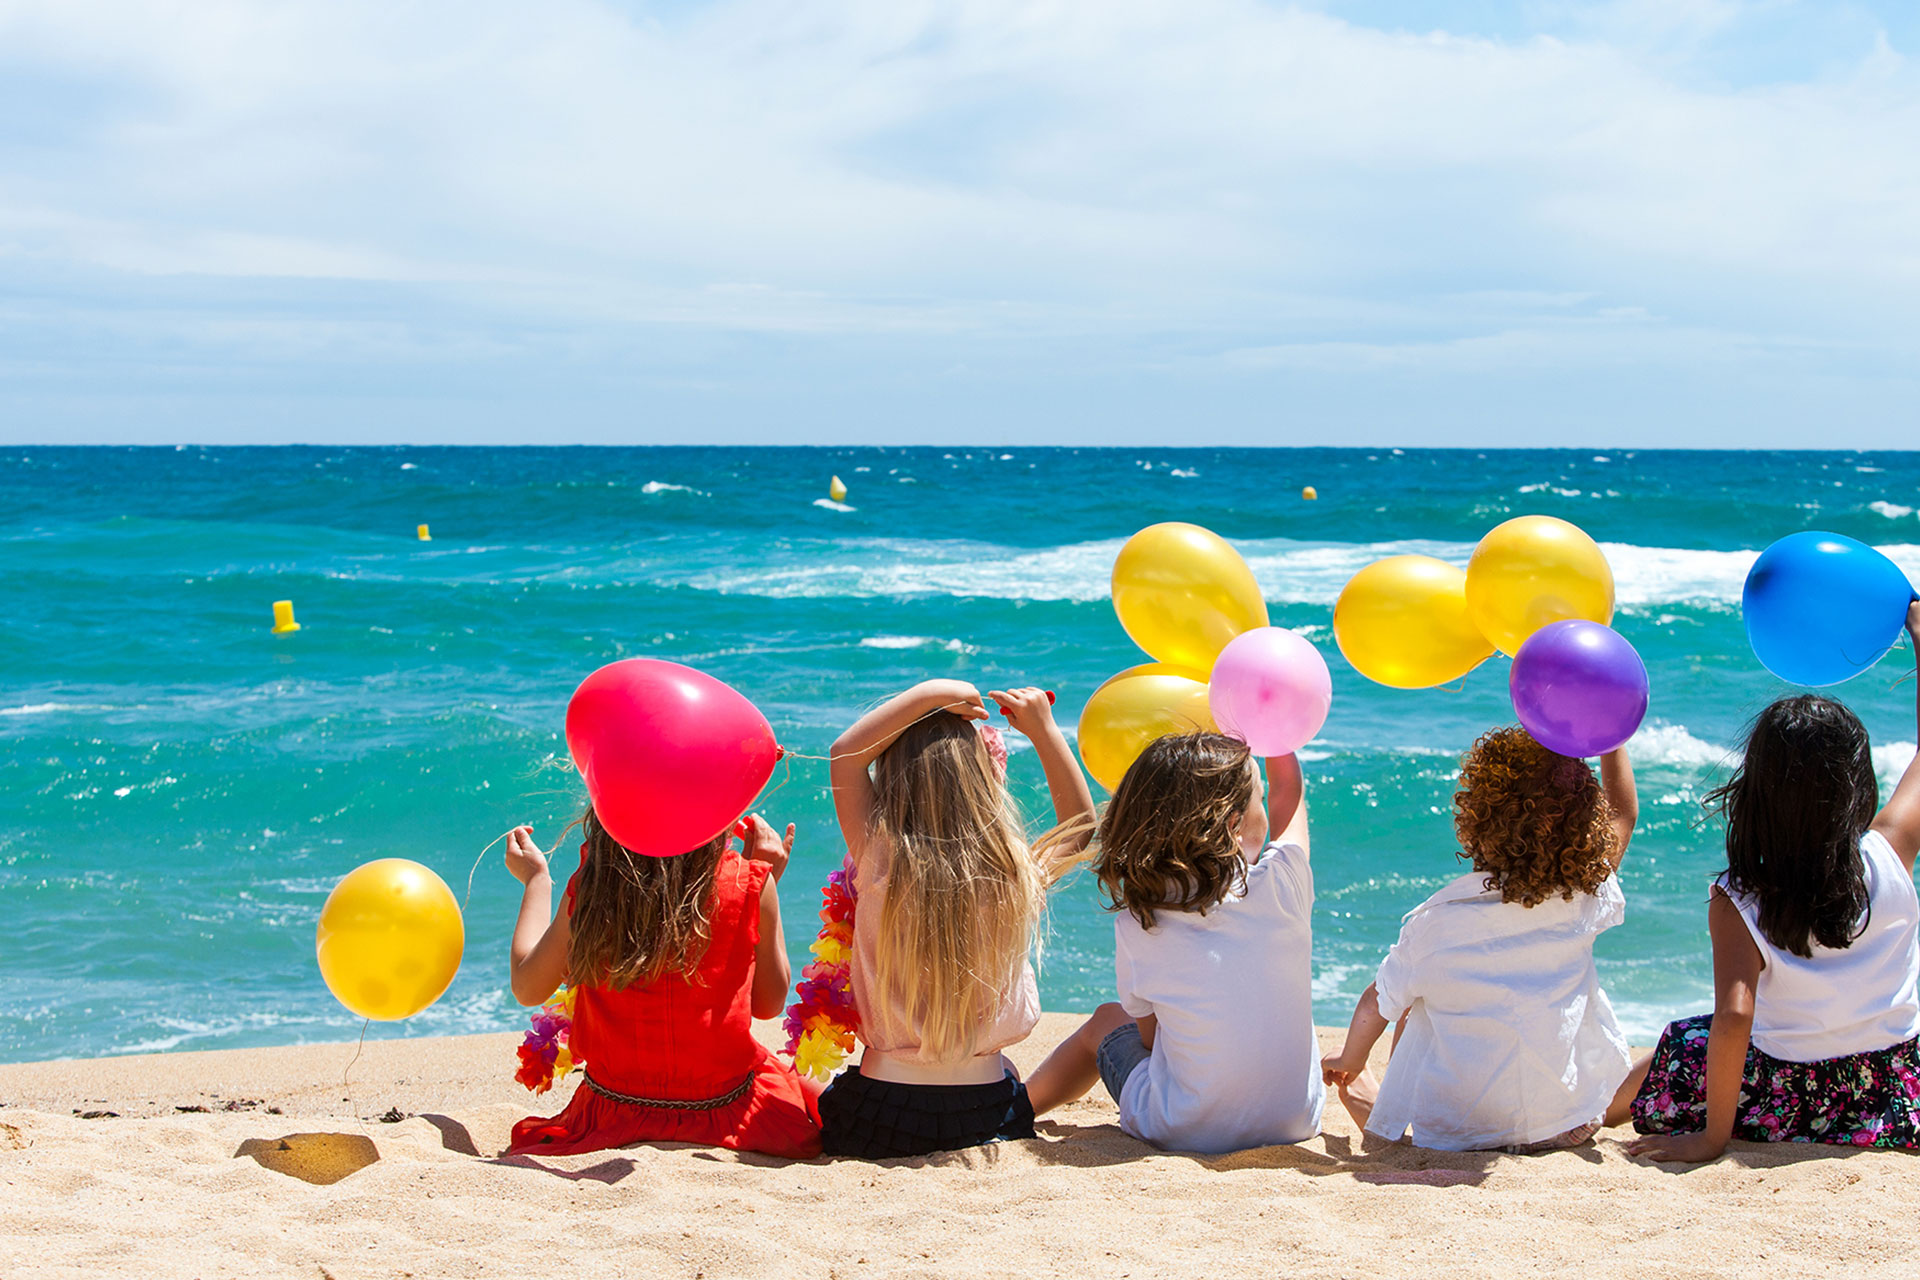 Kids on the beach with balloons